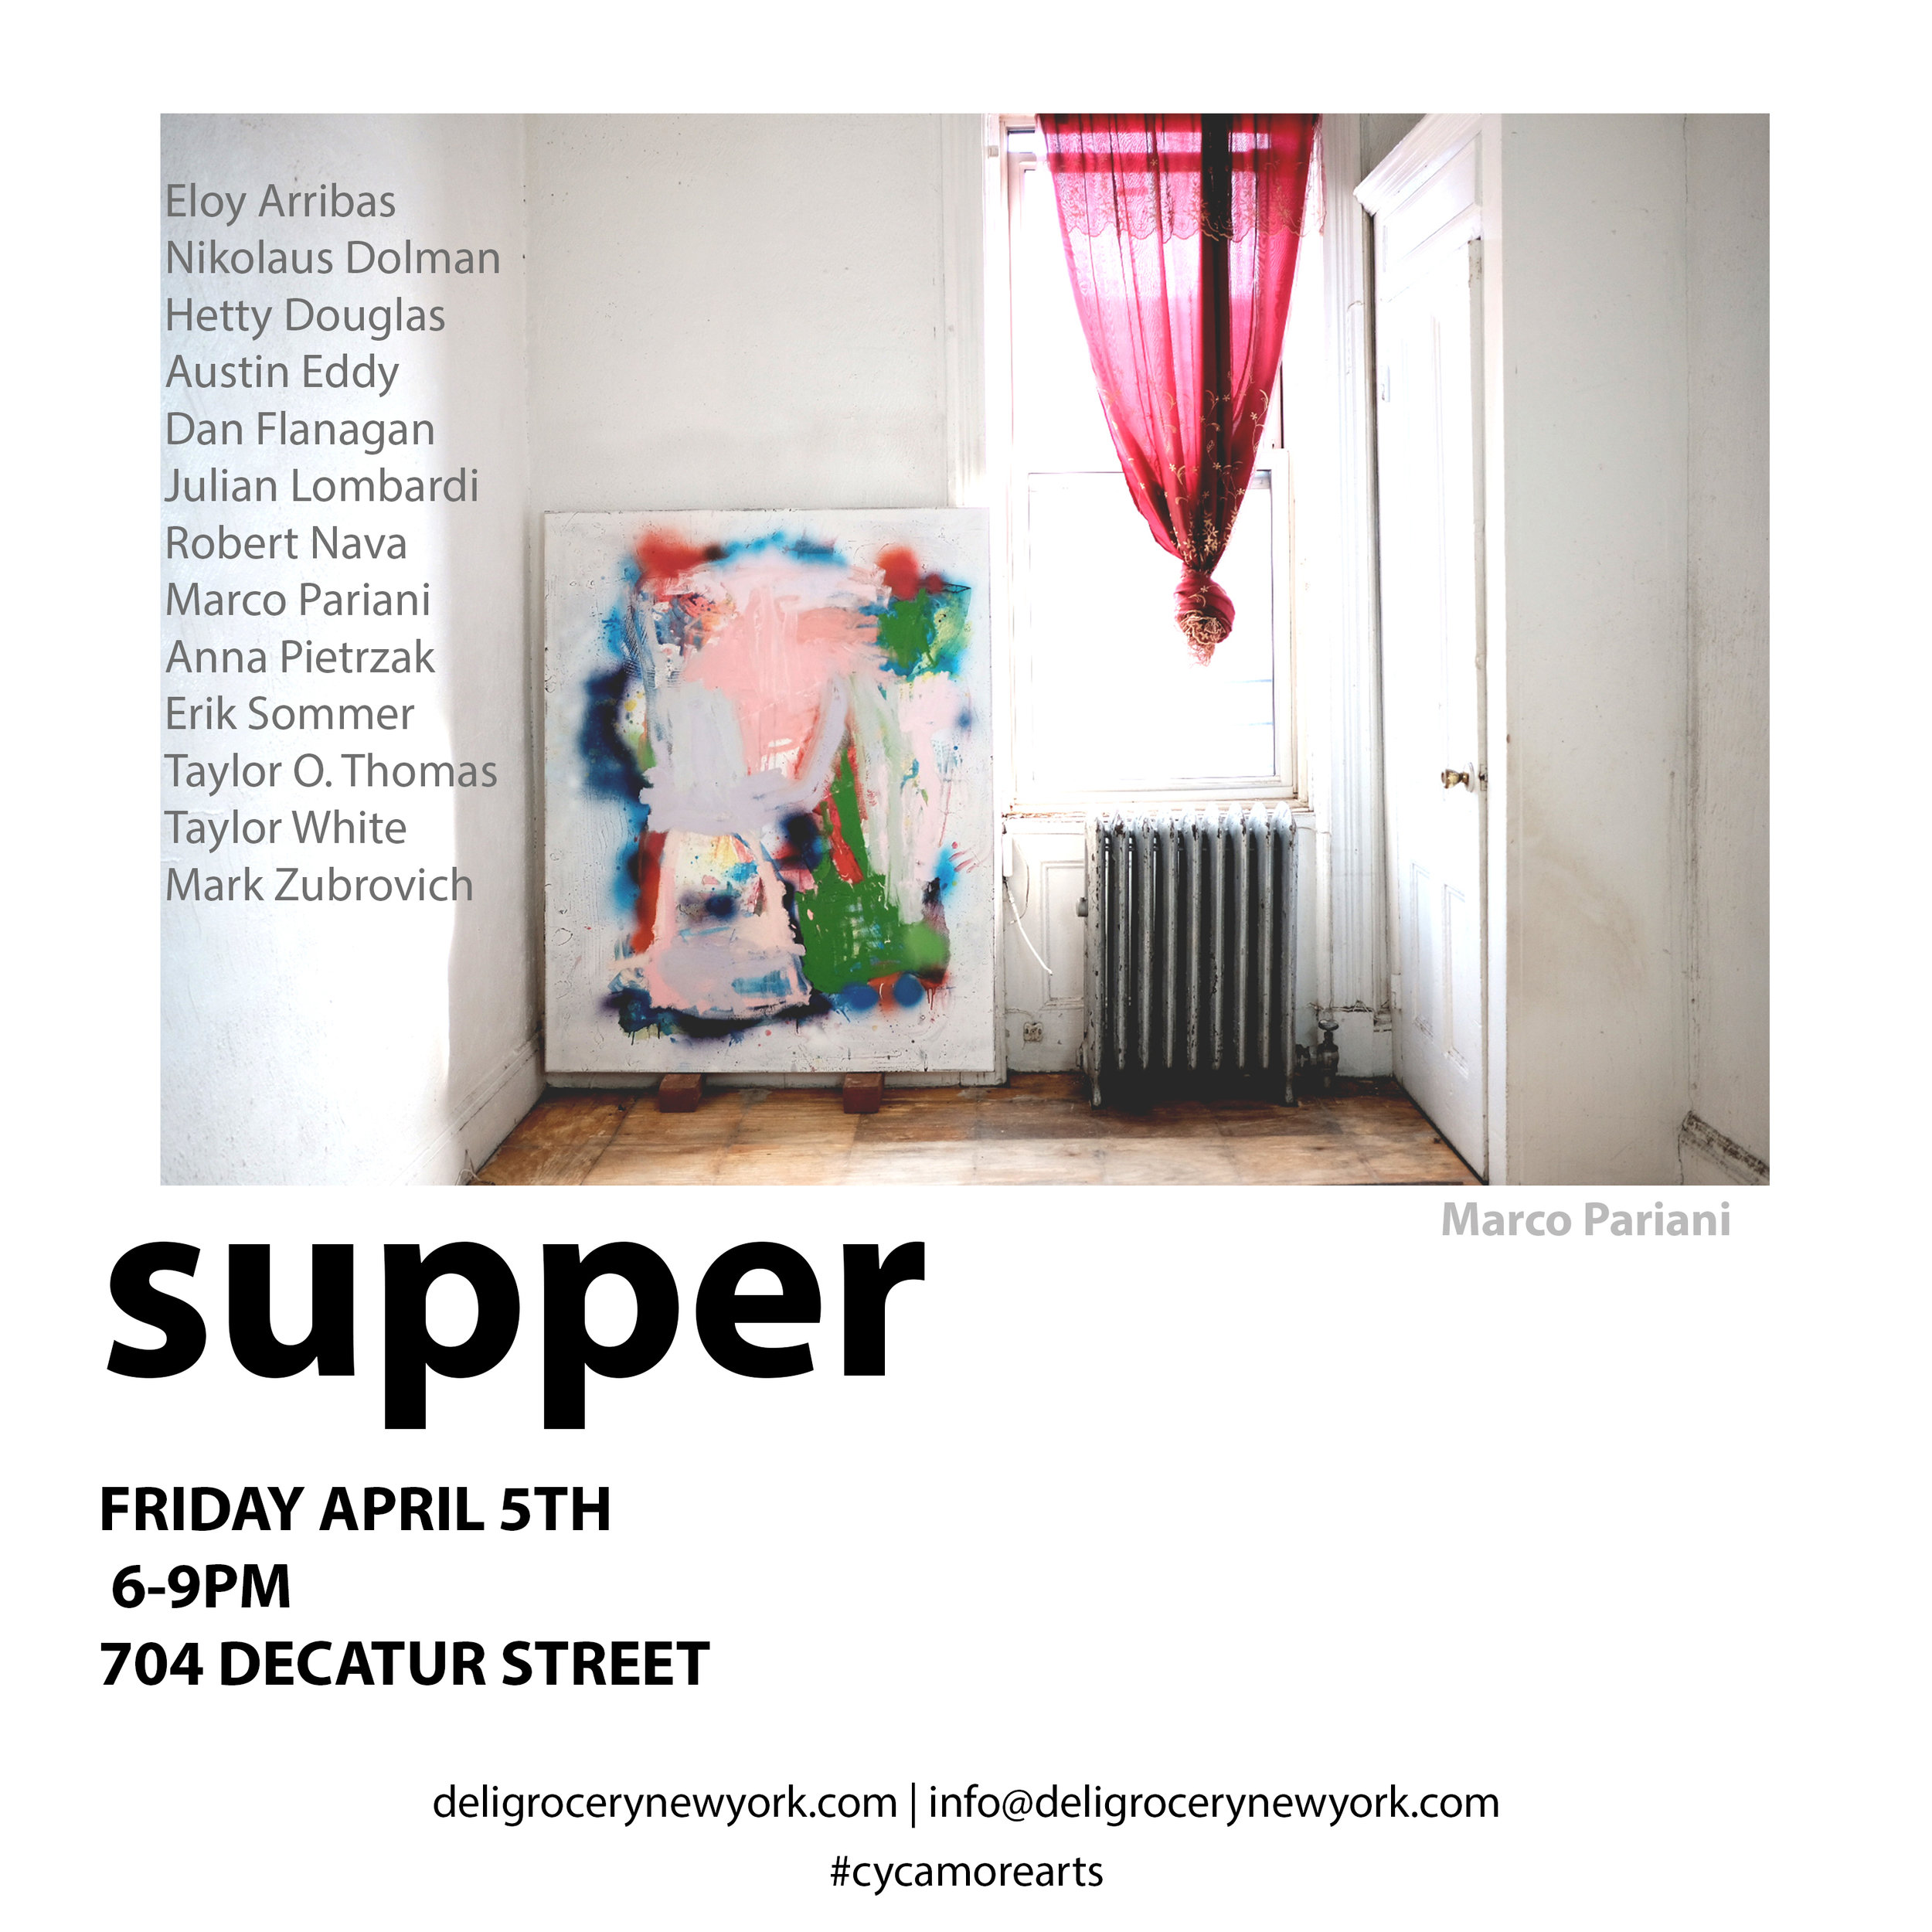 Supper - April 5 - 27, 2019sup·per /ˈsəpər/ noun an evening meal, typically a light or informal one.